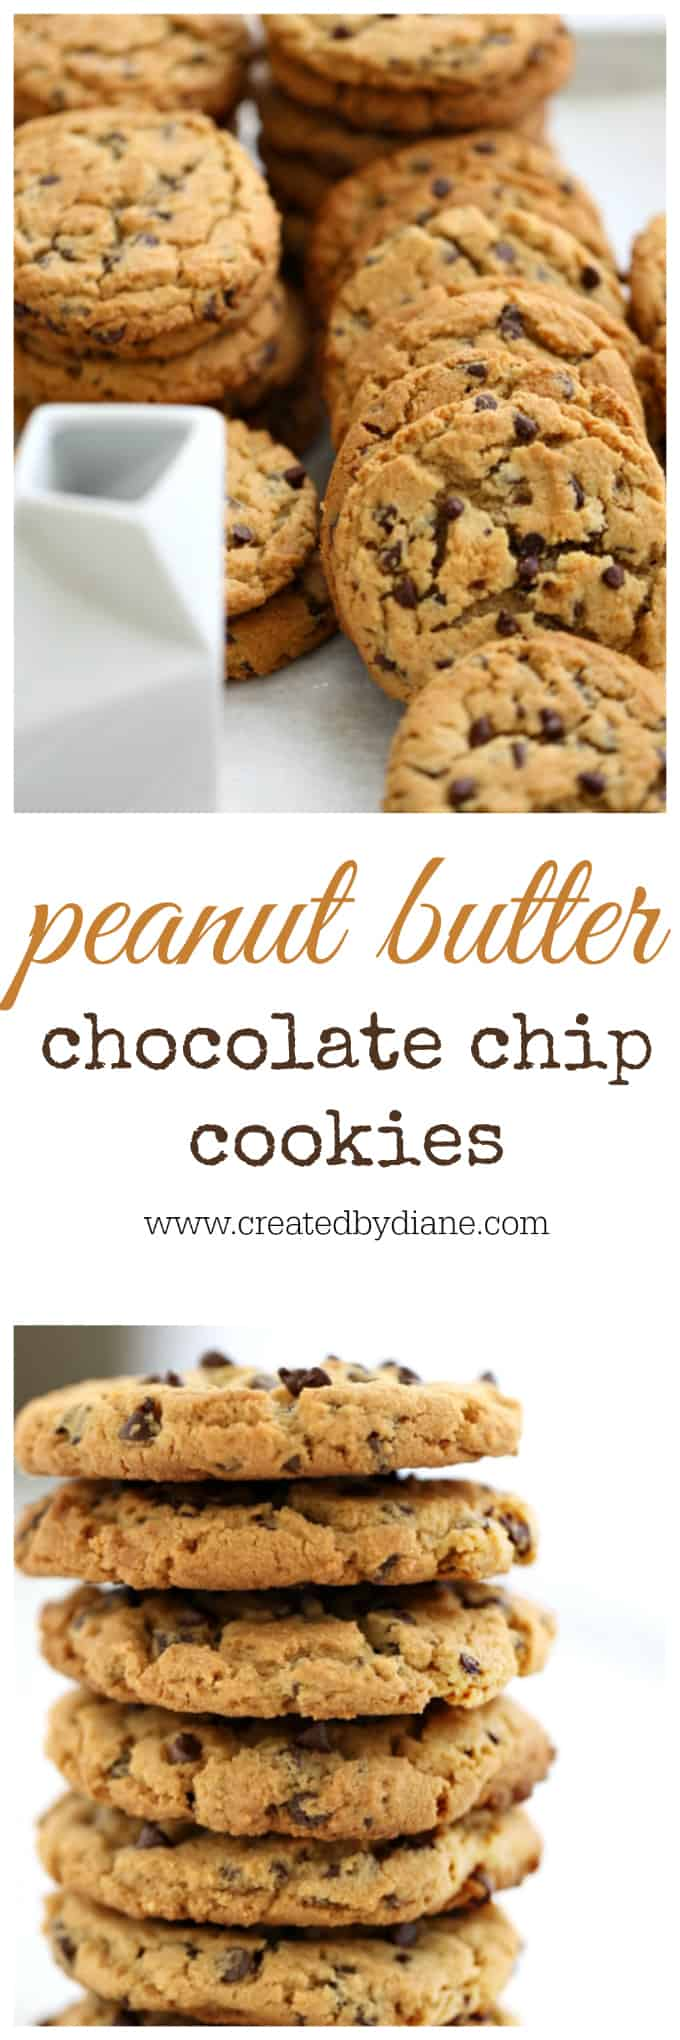 BIG Peanut Butter Chocolate Chip Cookies www.createdbydiane.com